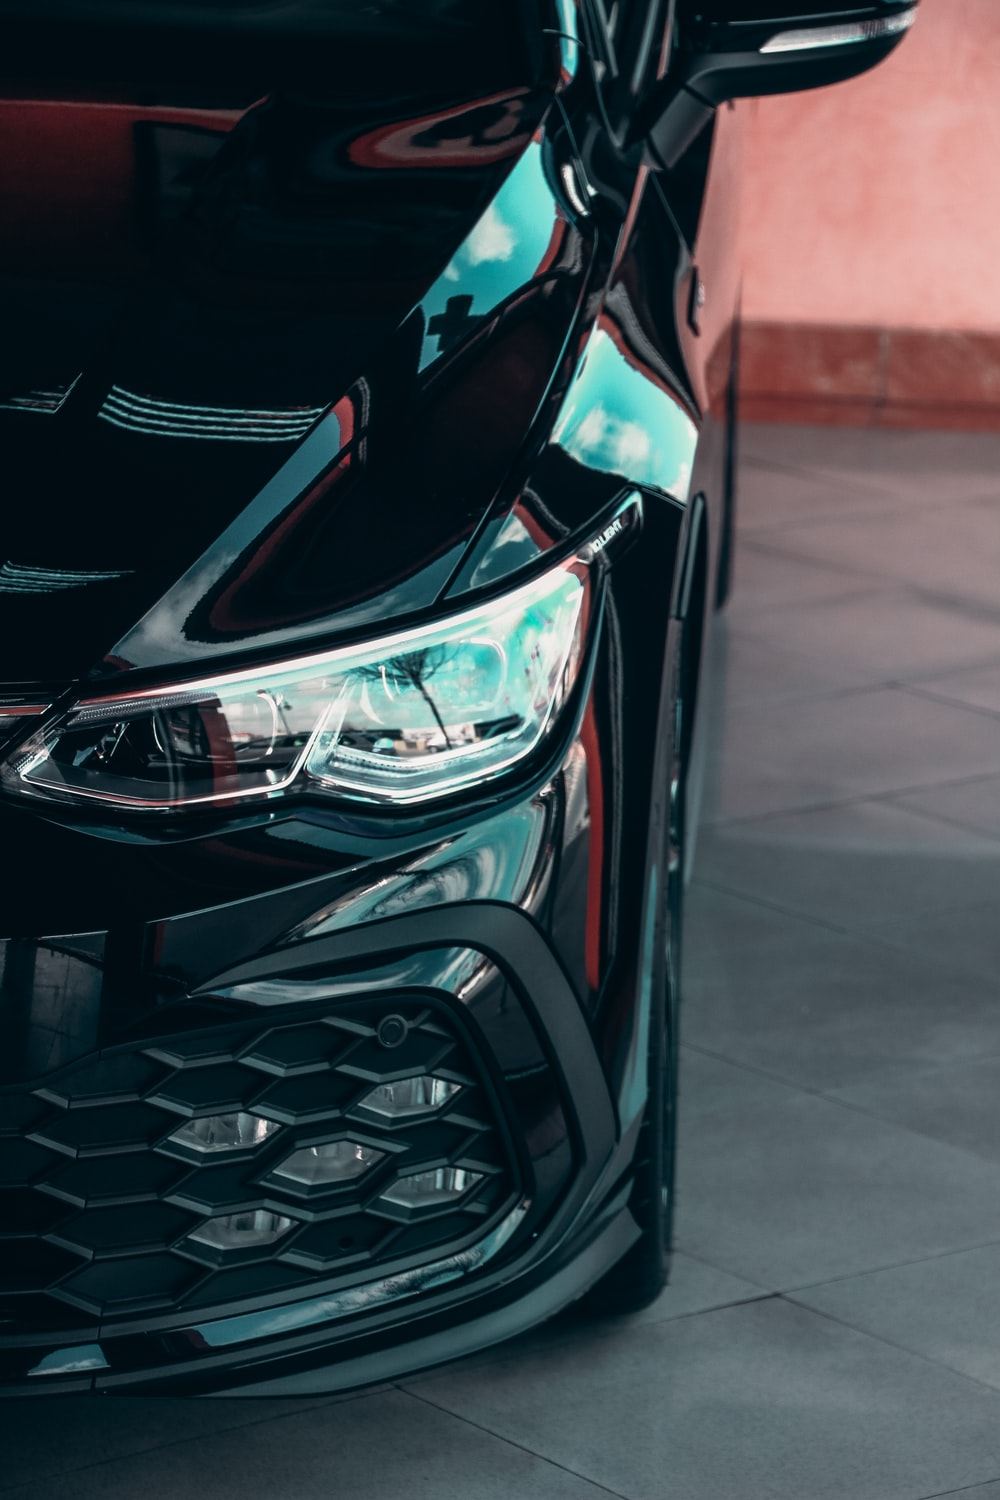 black and red car in close up photography